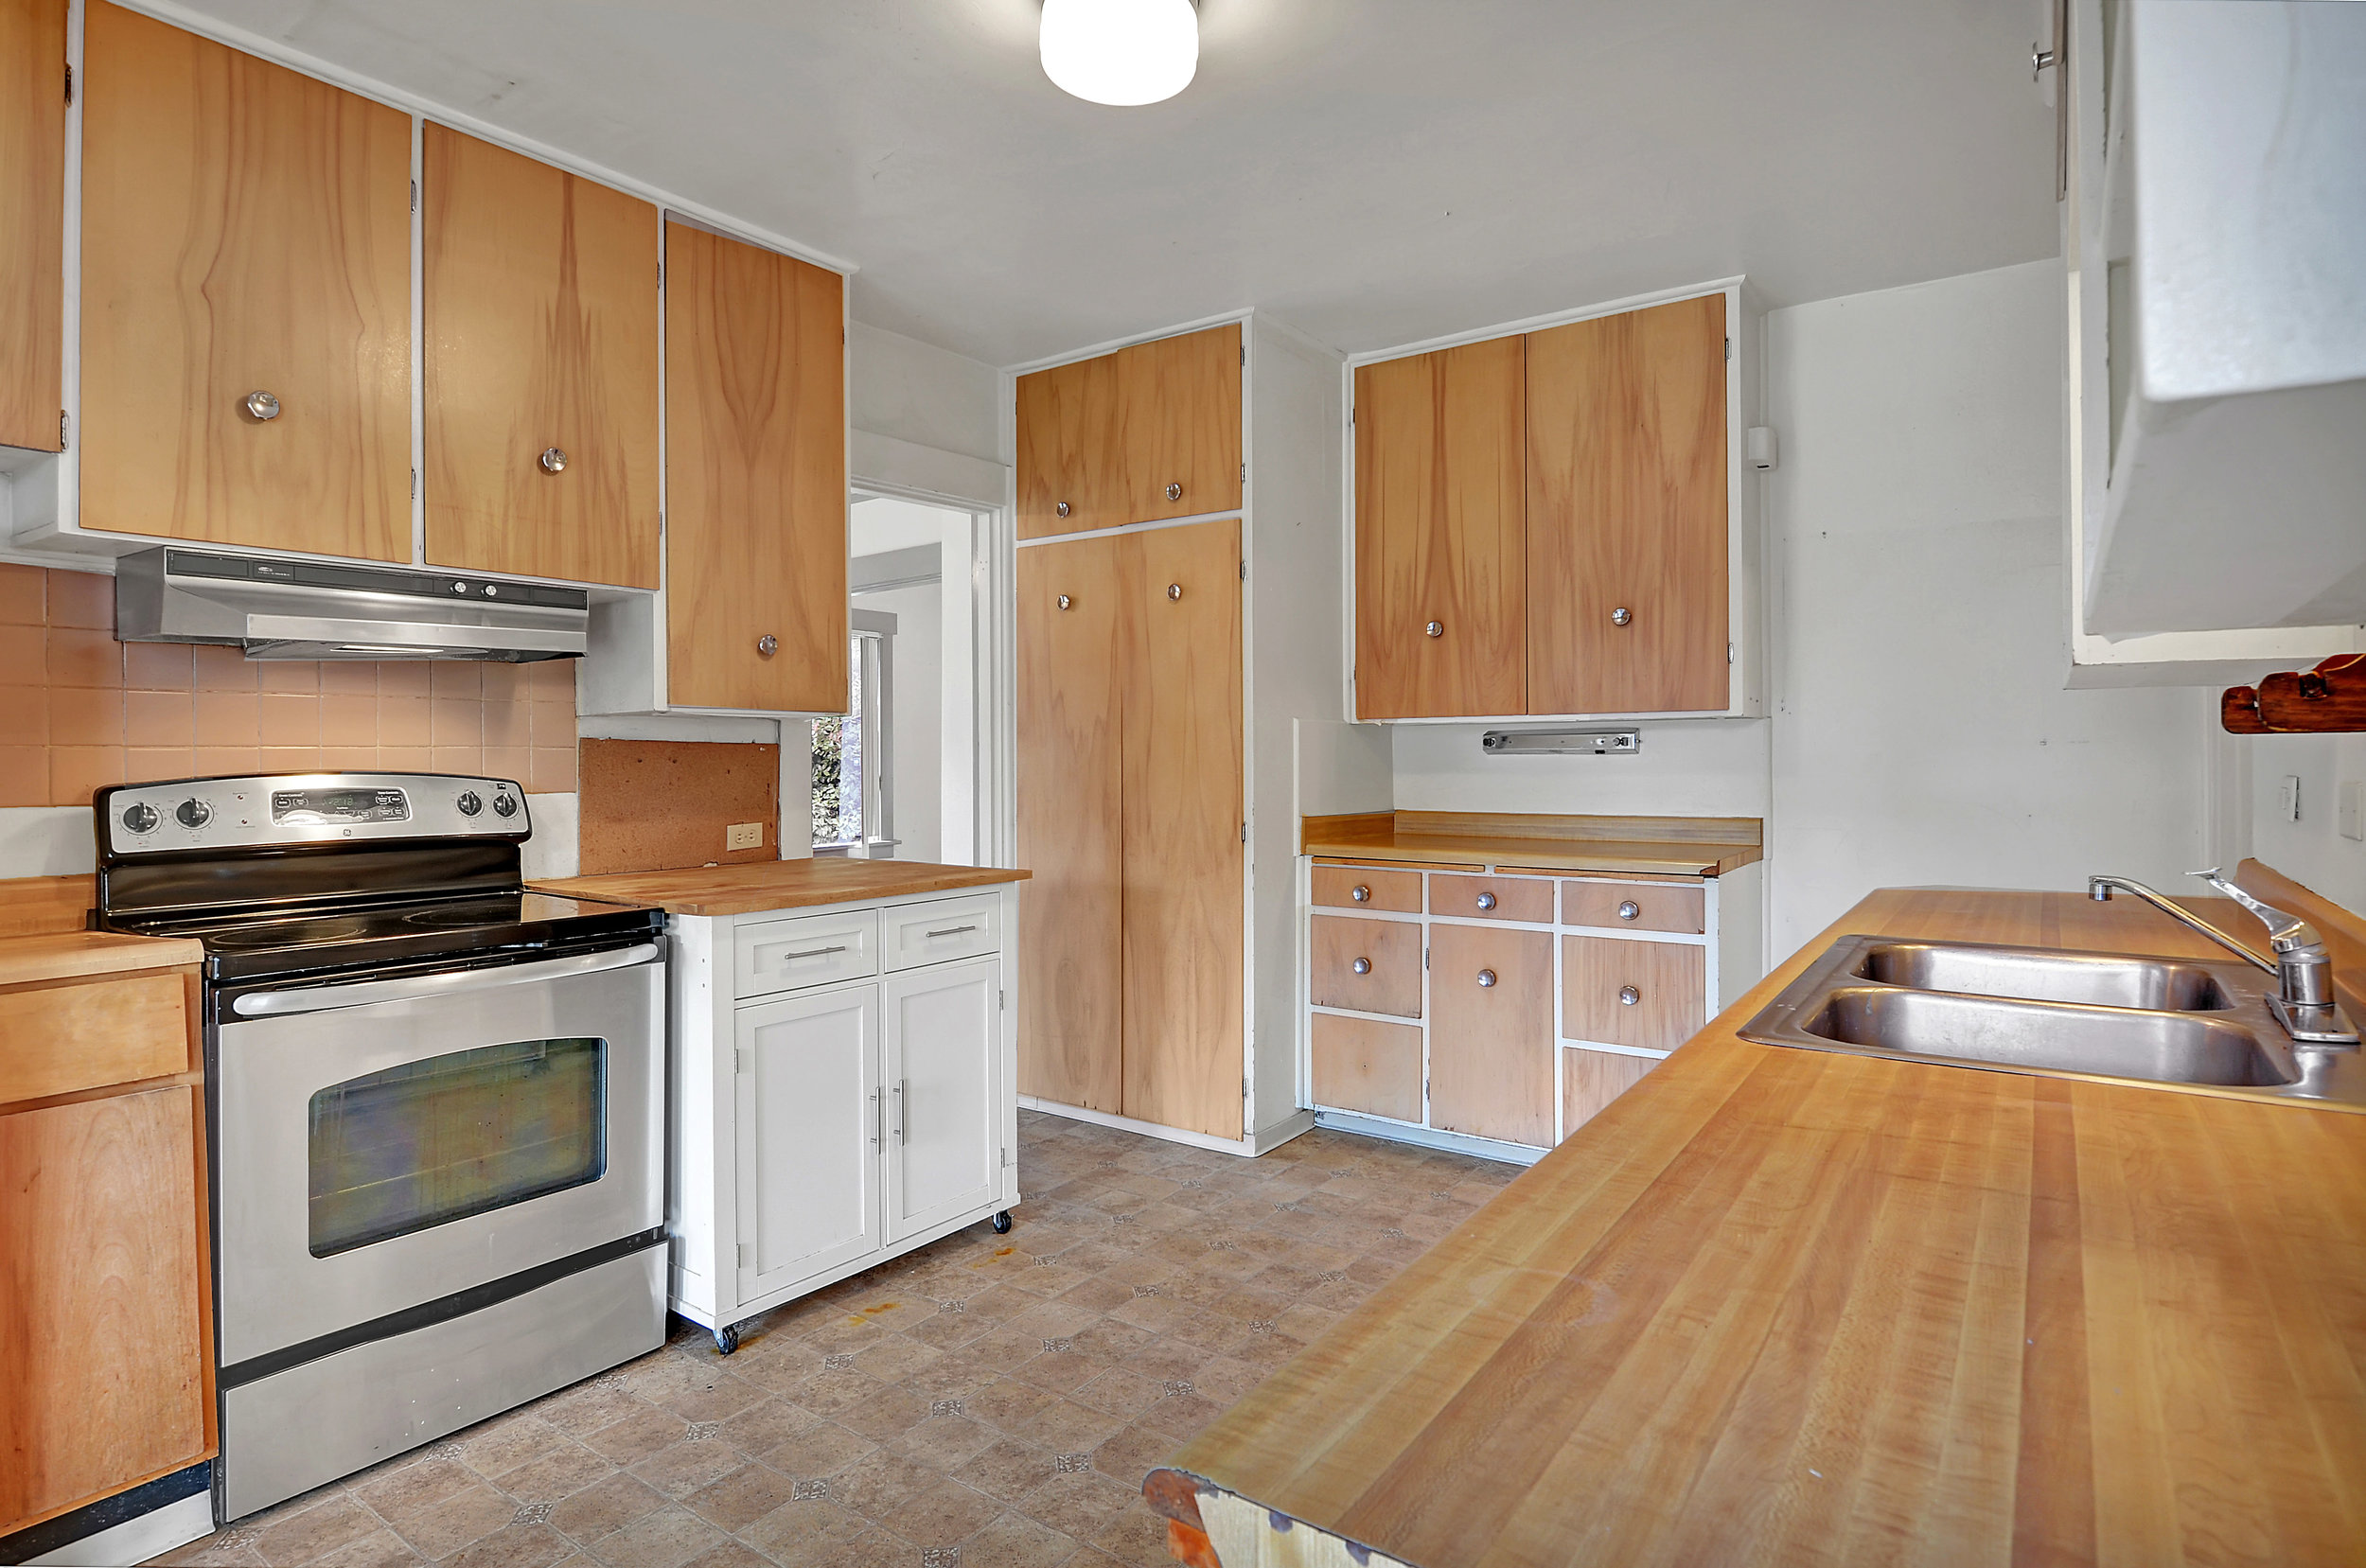 The stove and refrigerator are included, and there's a nice amount of storage in this kitchen.